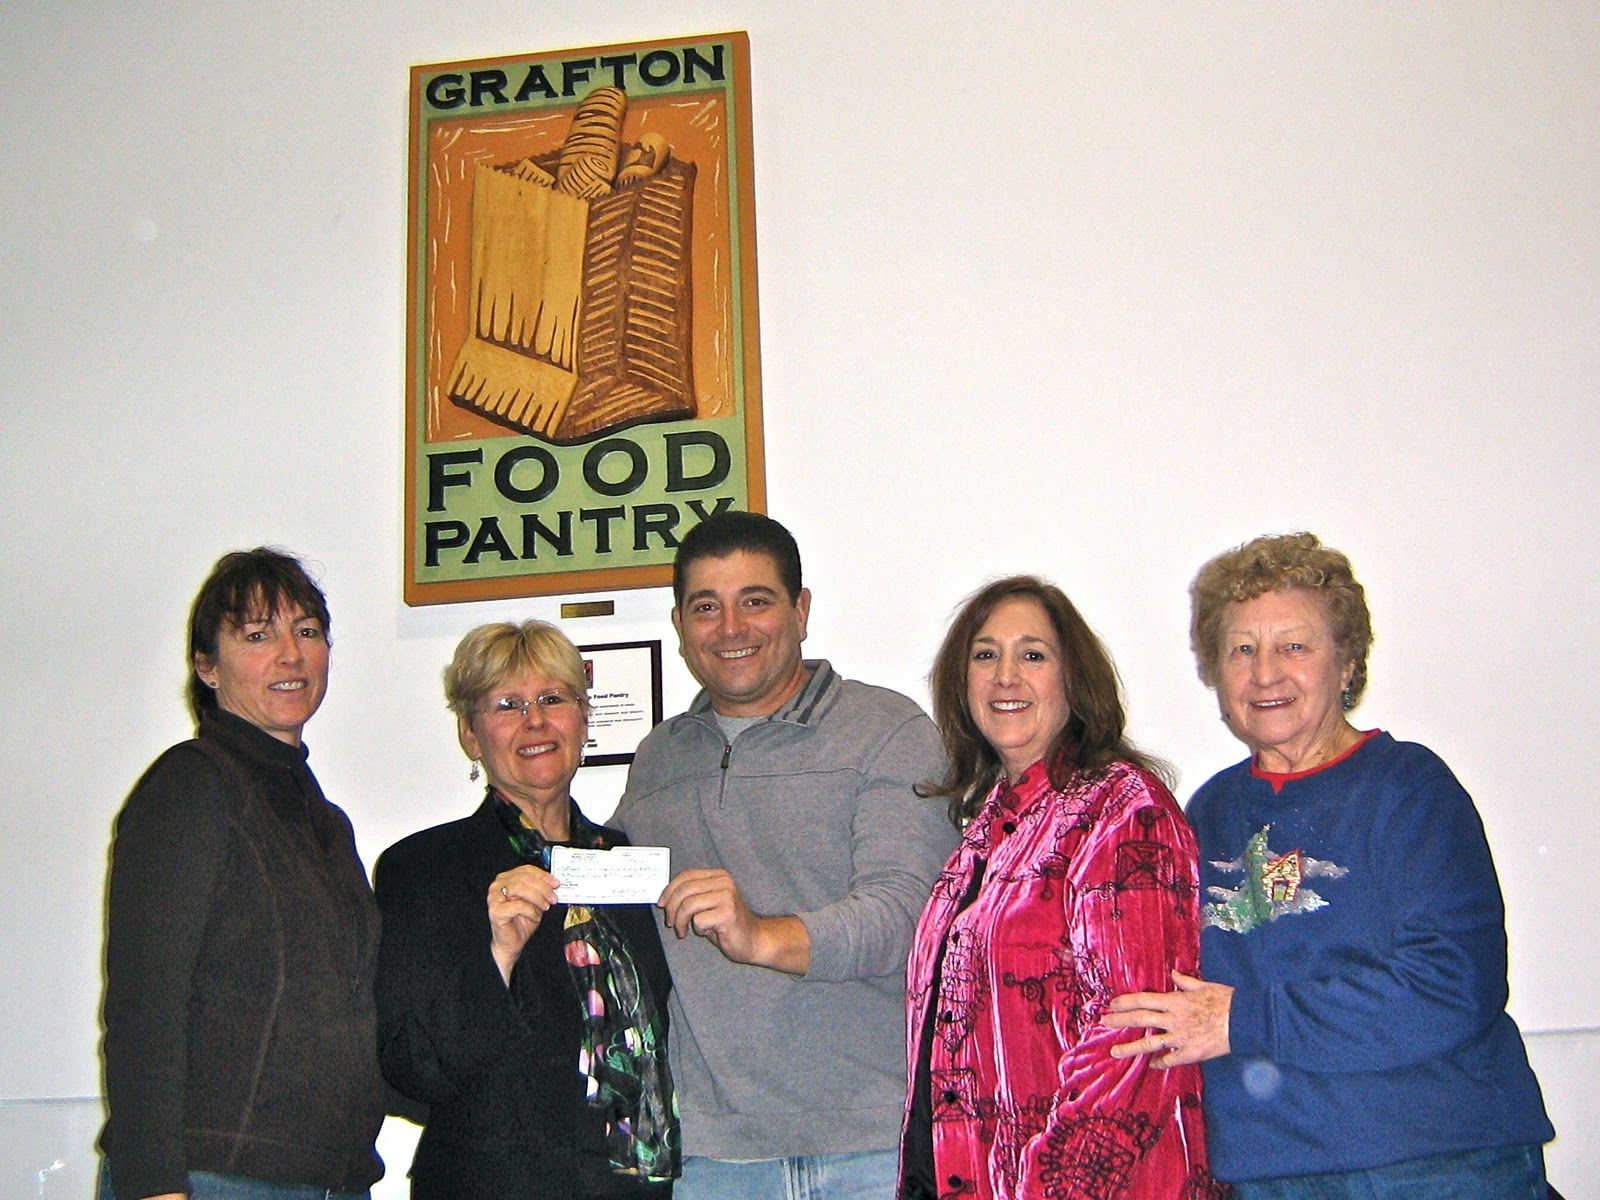 Grafton Food Pantry Donation